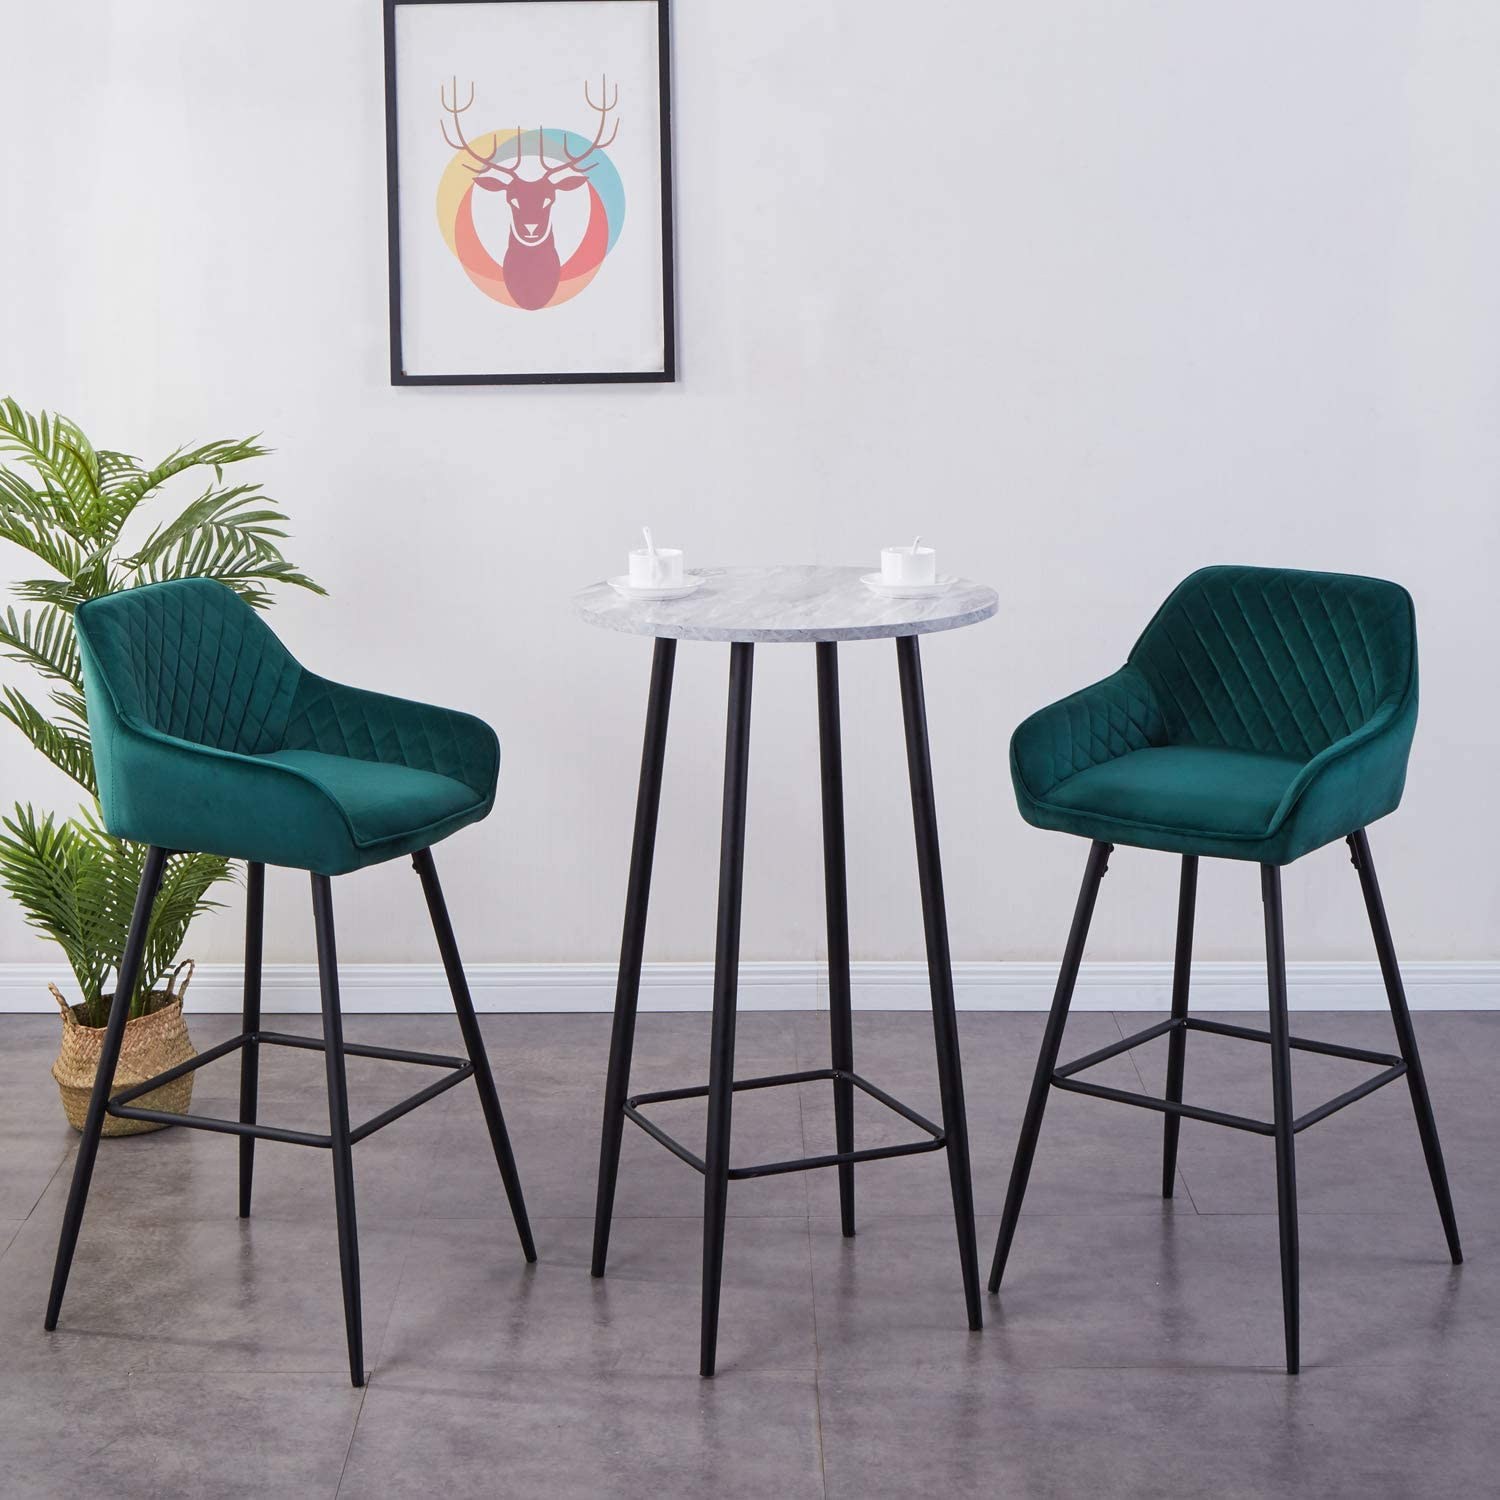 Jymtom Bar Stools Set of 9 Kitchen Chairs with Backrest, Footrest, Armrests  Metal Counter Stool